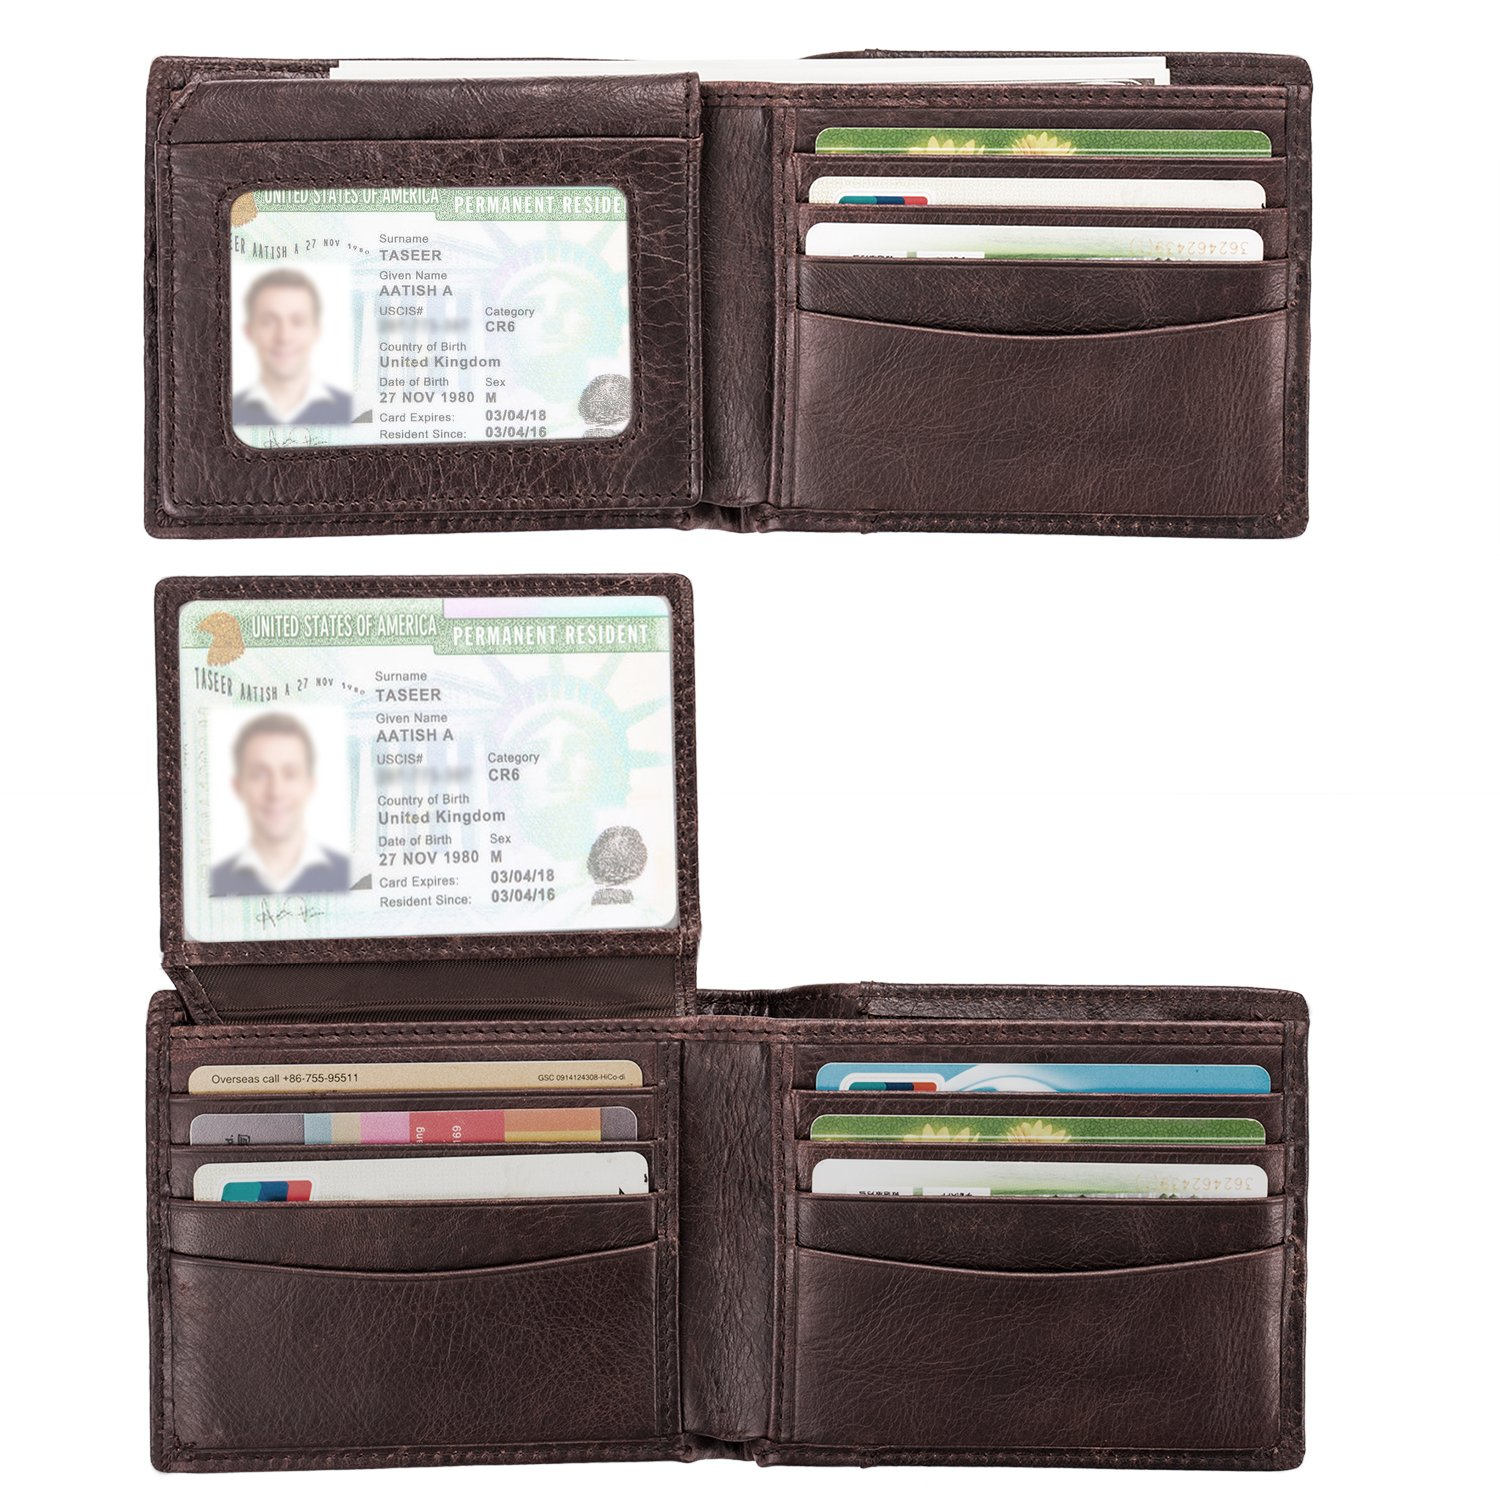 Genuine Leather Wallet for Men, RFID Blocking Bifold Men Wallet, Super Slim Design Stylish Gift for Men, Multi Card Extra Capacity Travel Wallet with 2 ID Window